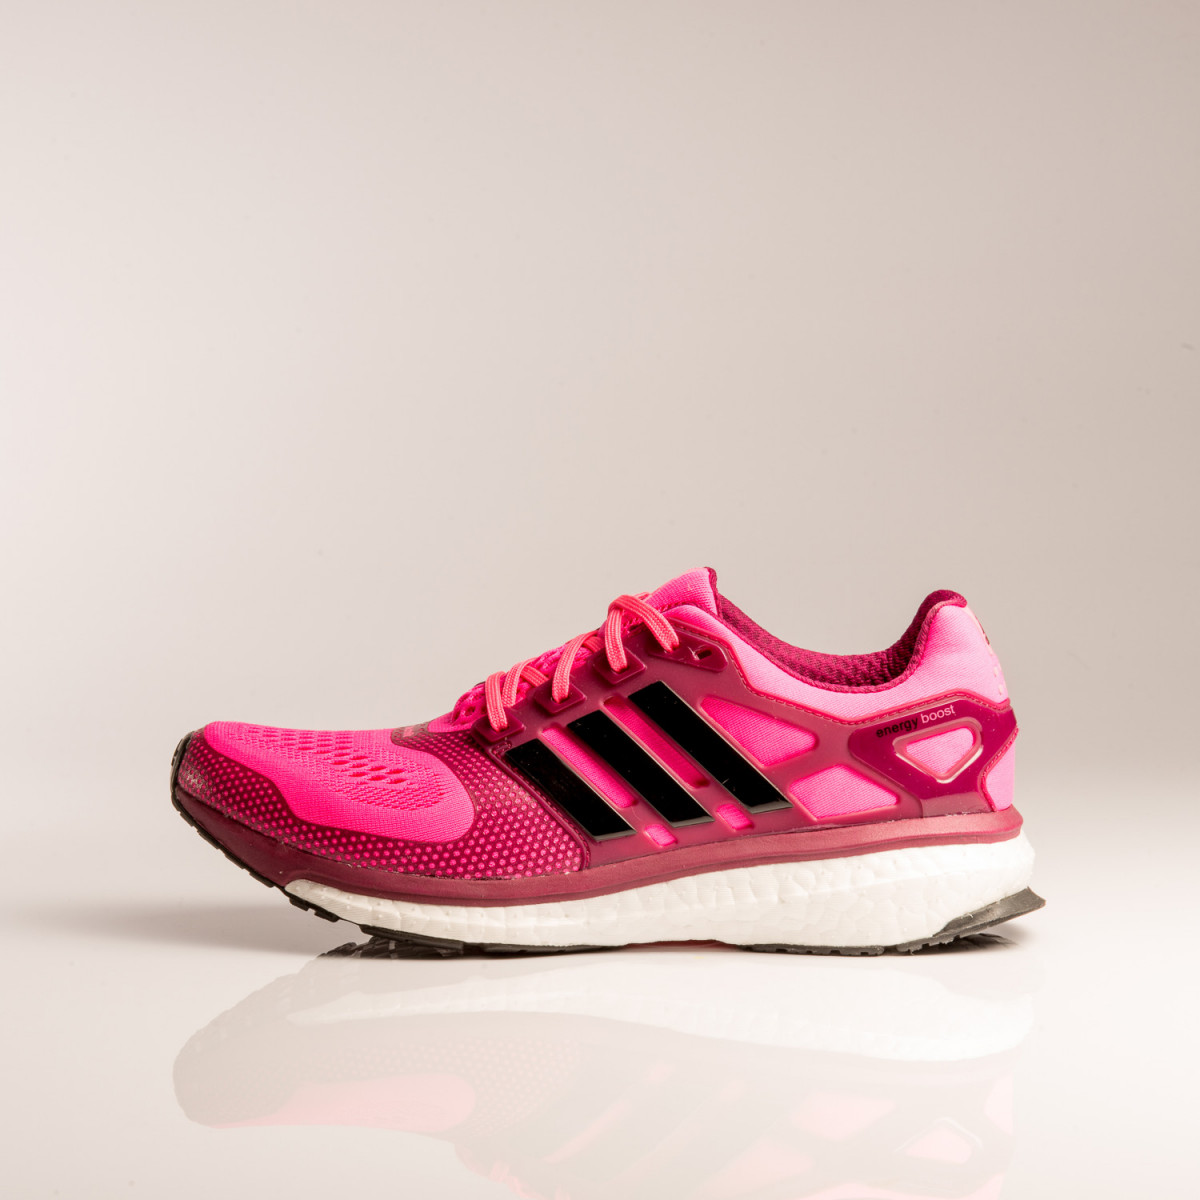 ZAPATILLAS ADIDAS ENERGY BOOST 2 ESM